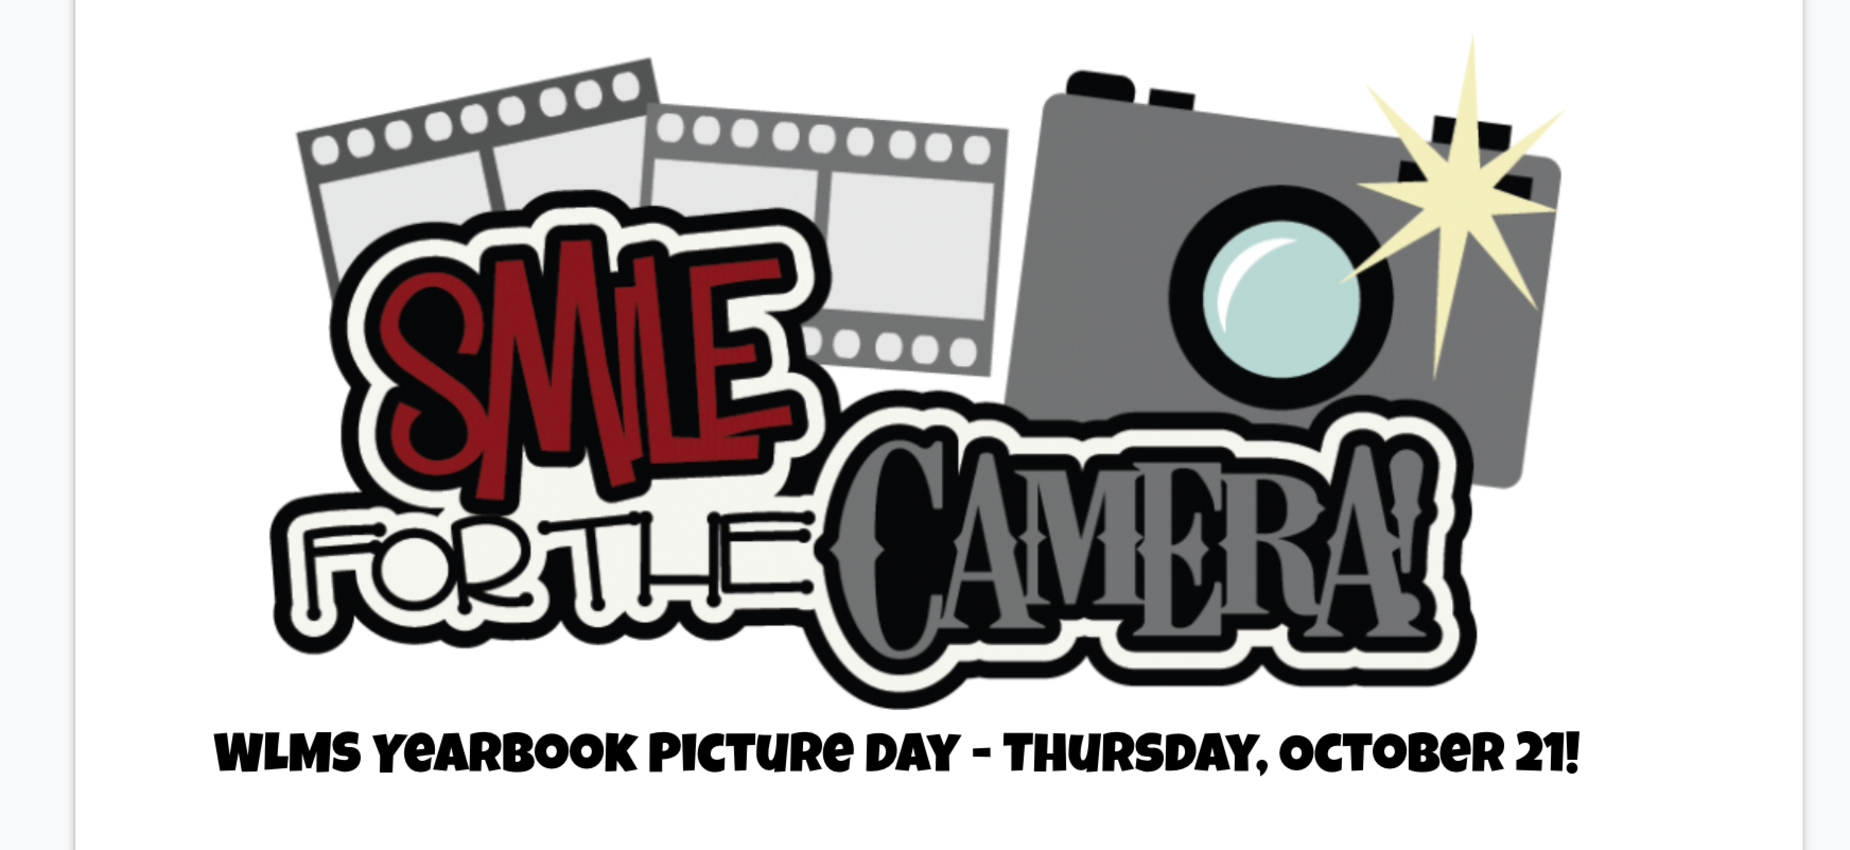 Picture day is October 21